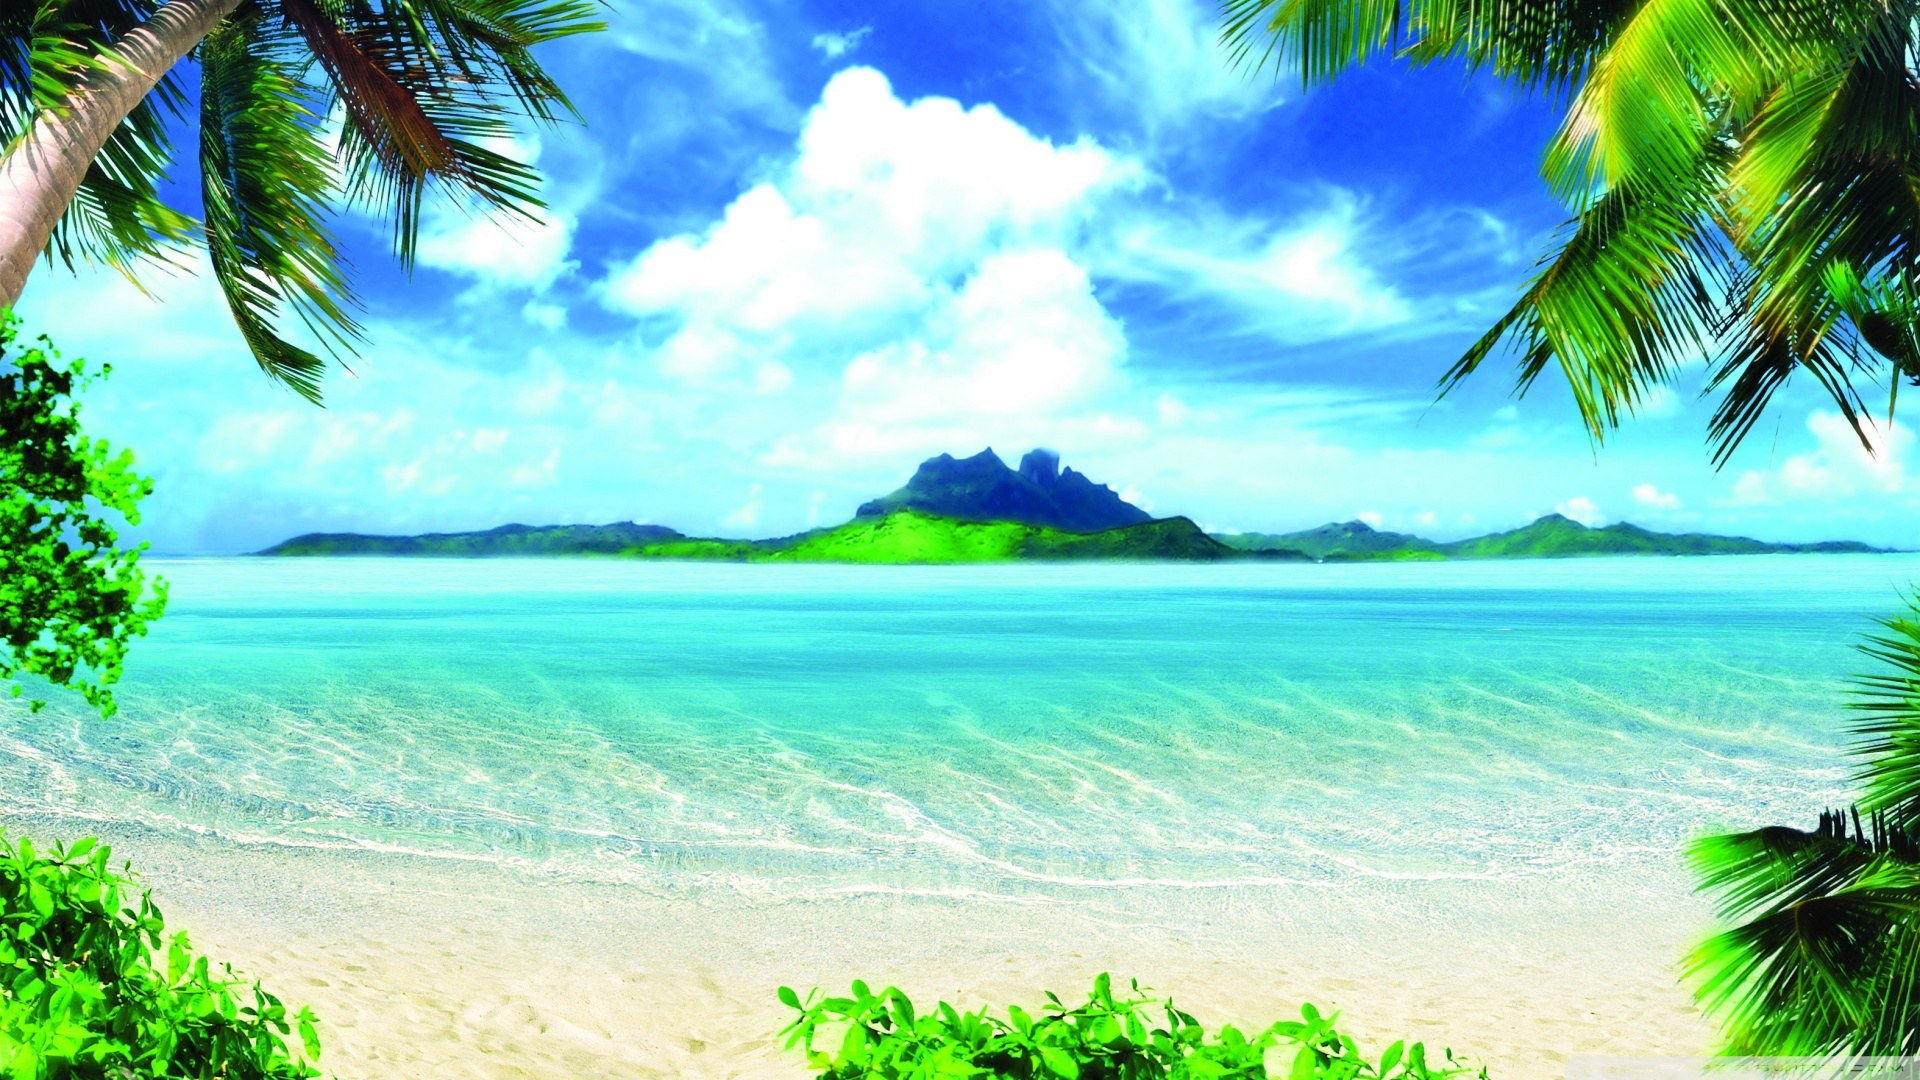 Best 47 Vacation Backgrounds on HipWallpaper Summer Vacation 1920x1080